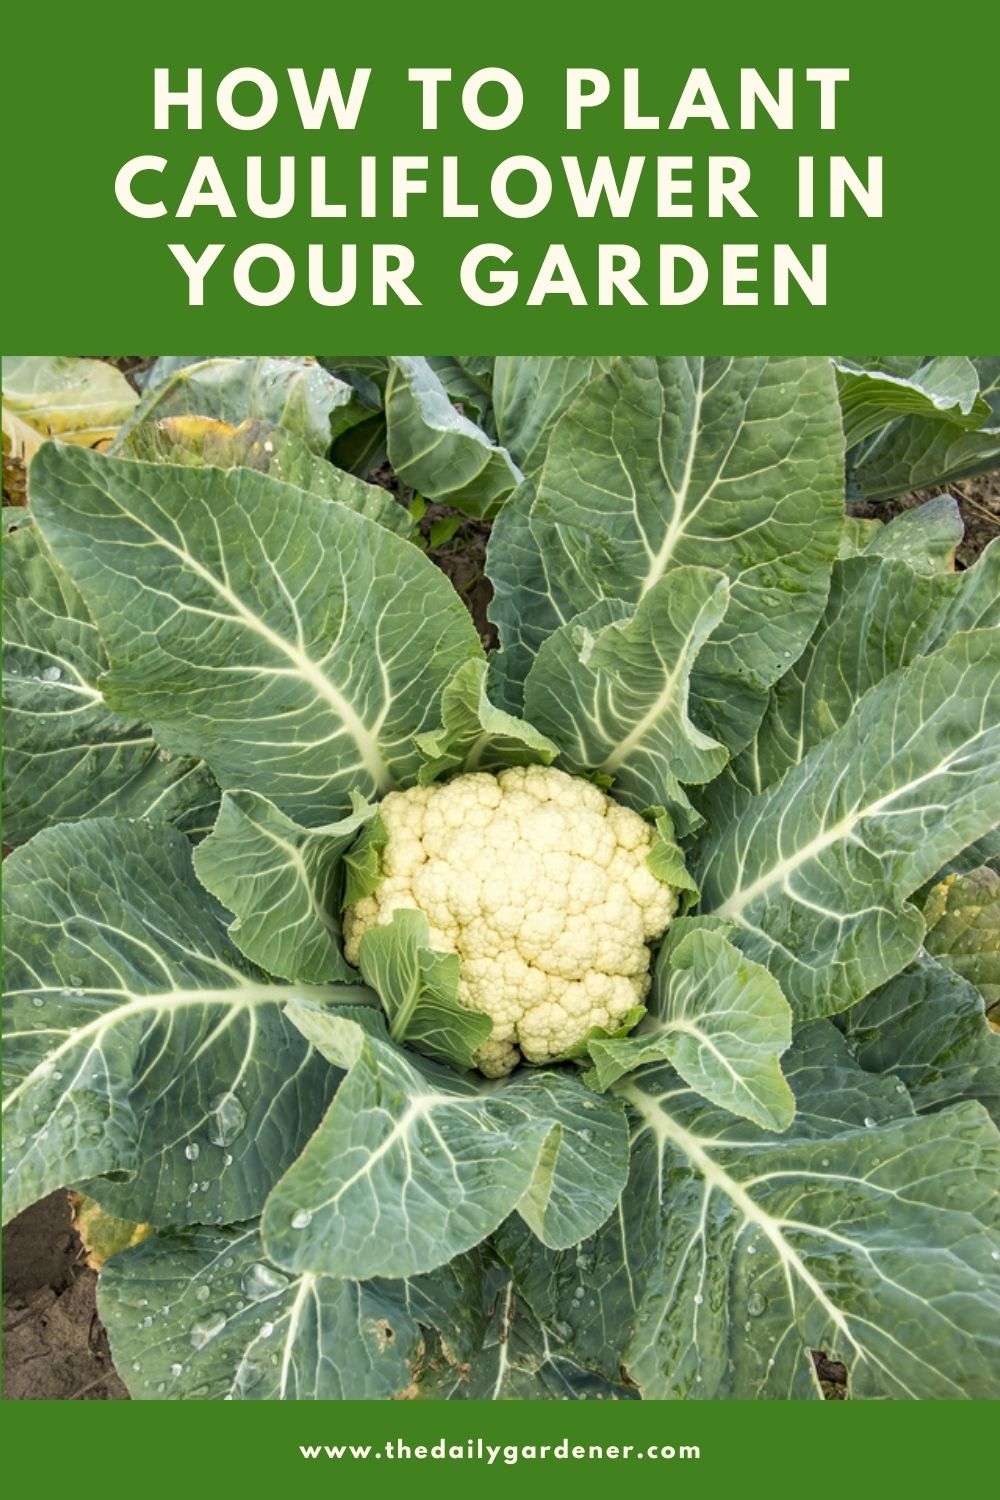 How to Plant Cauliflower in Your Garden (Tricks to Care!) 1